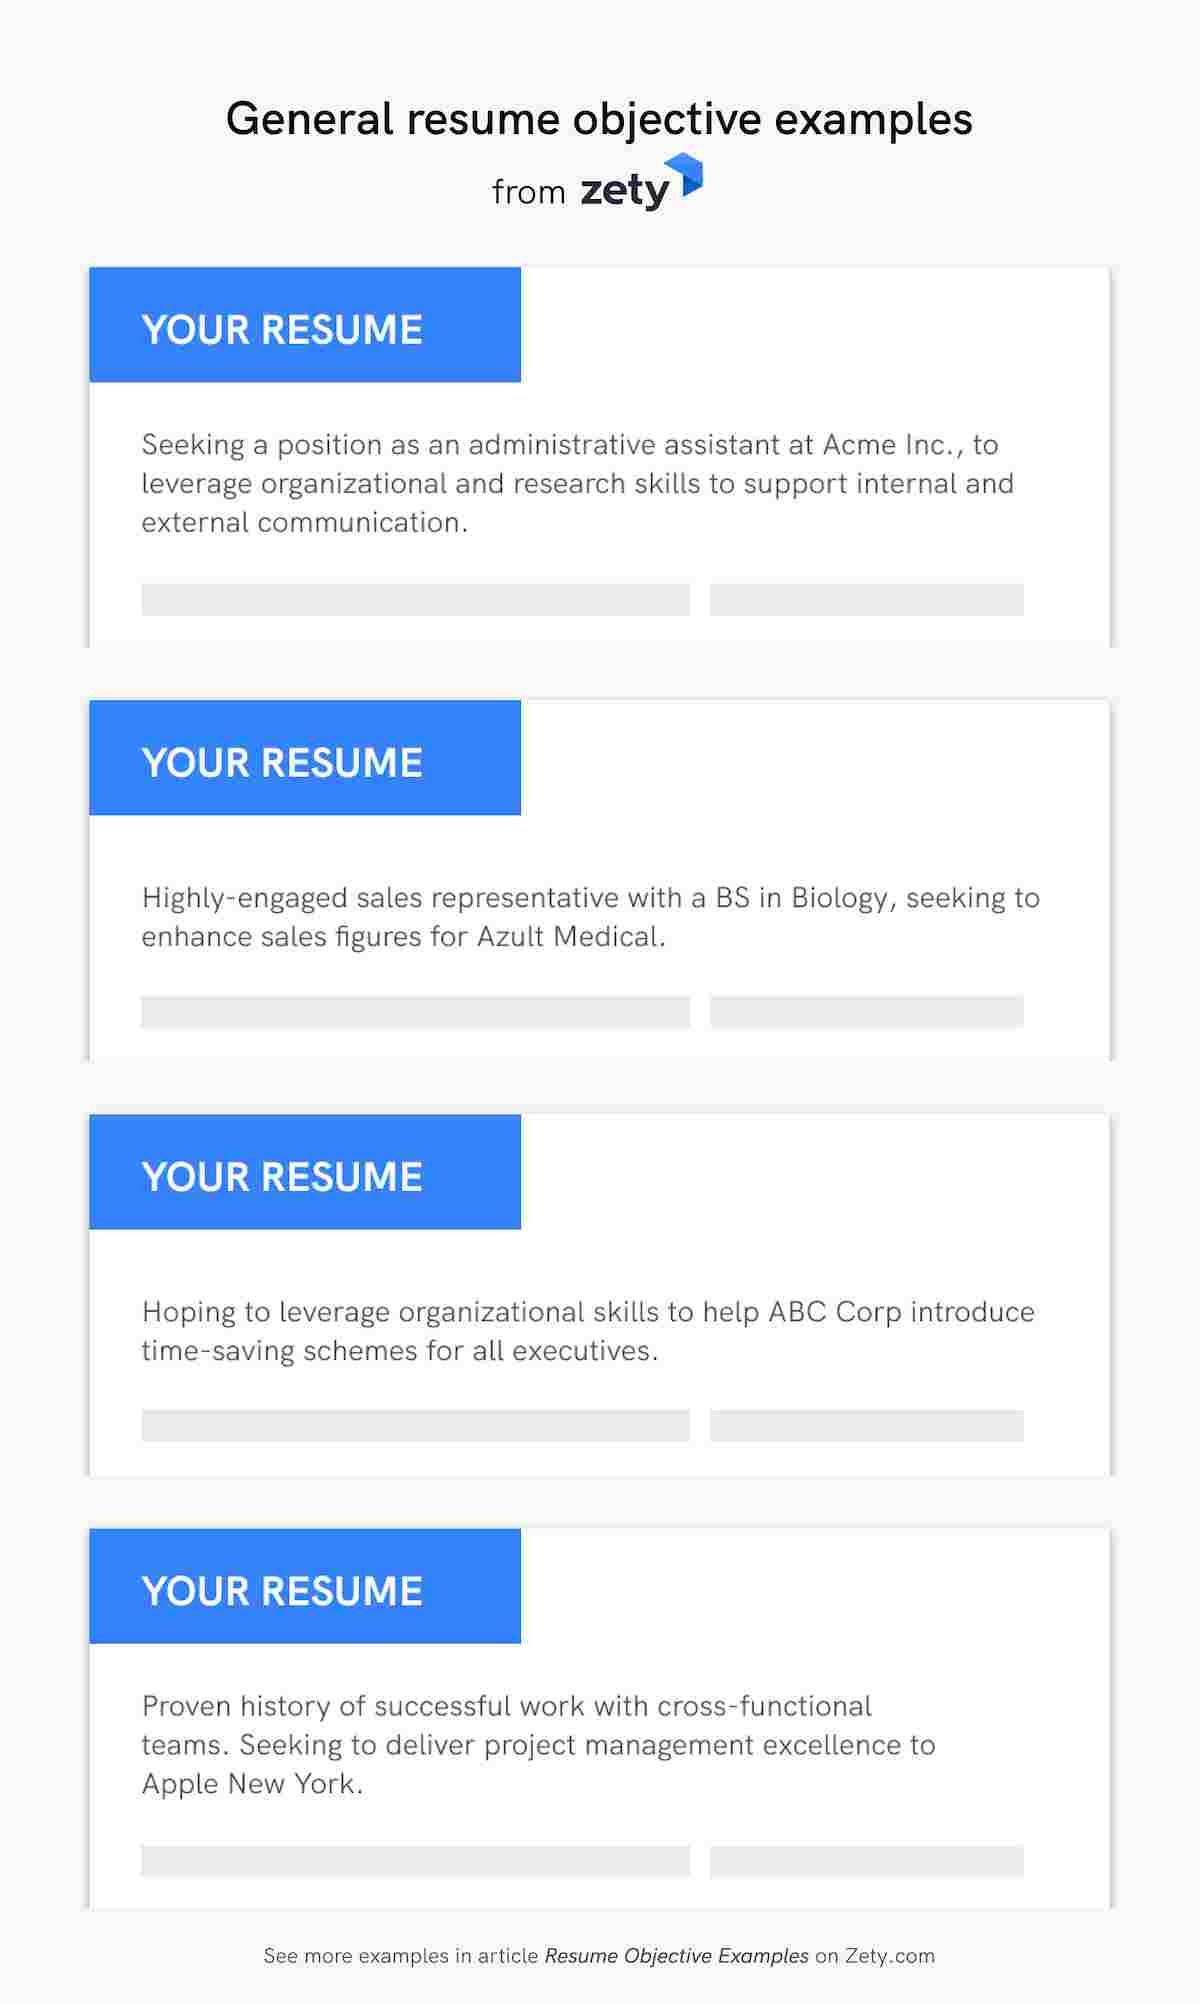 resume objective examples career objectives for all jobs good statement general paper Resume Good Career Objective Statement For Resume